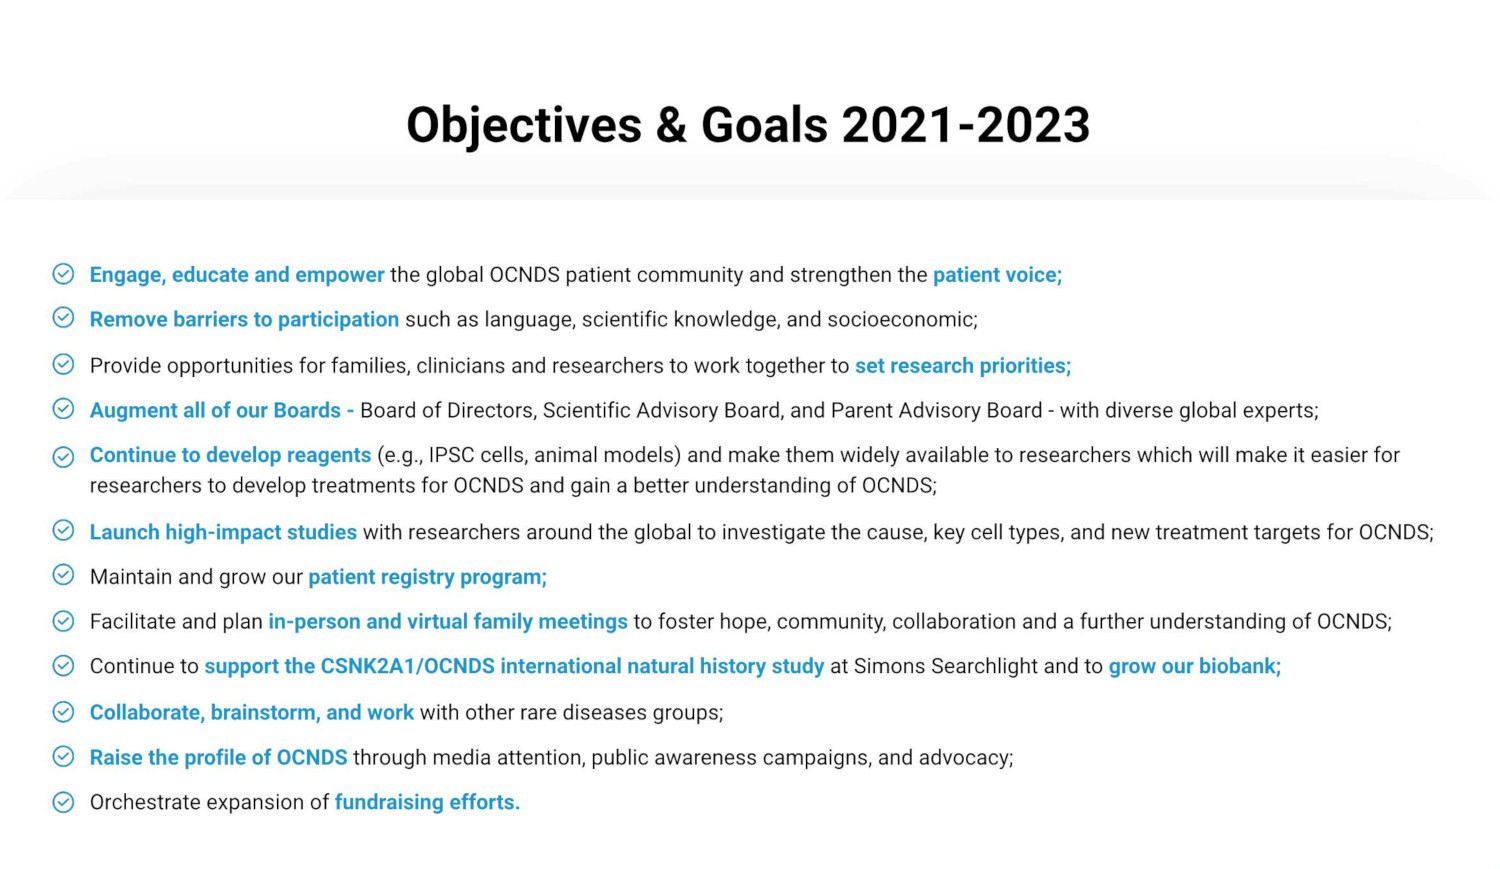 Objectives and Goals 2021-2023